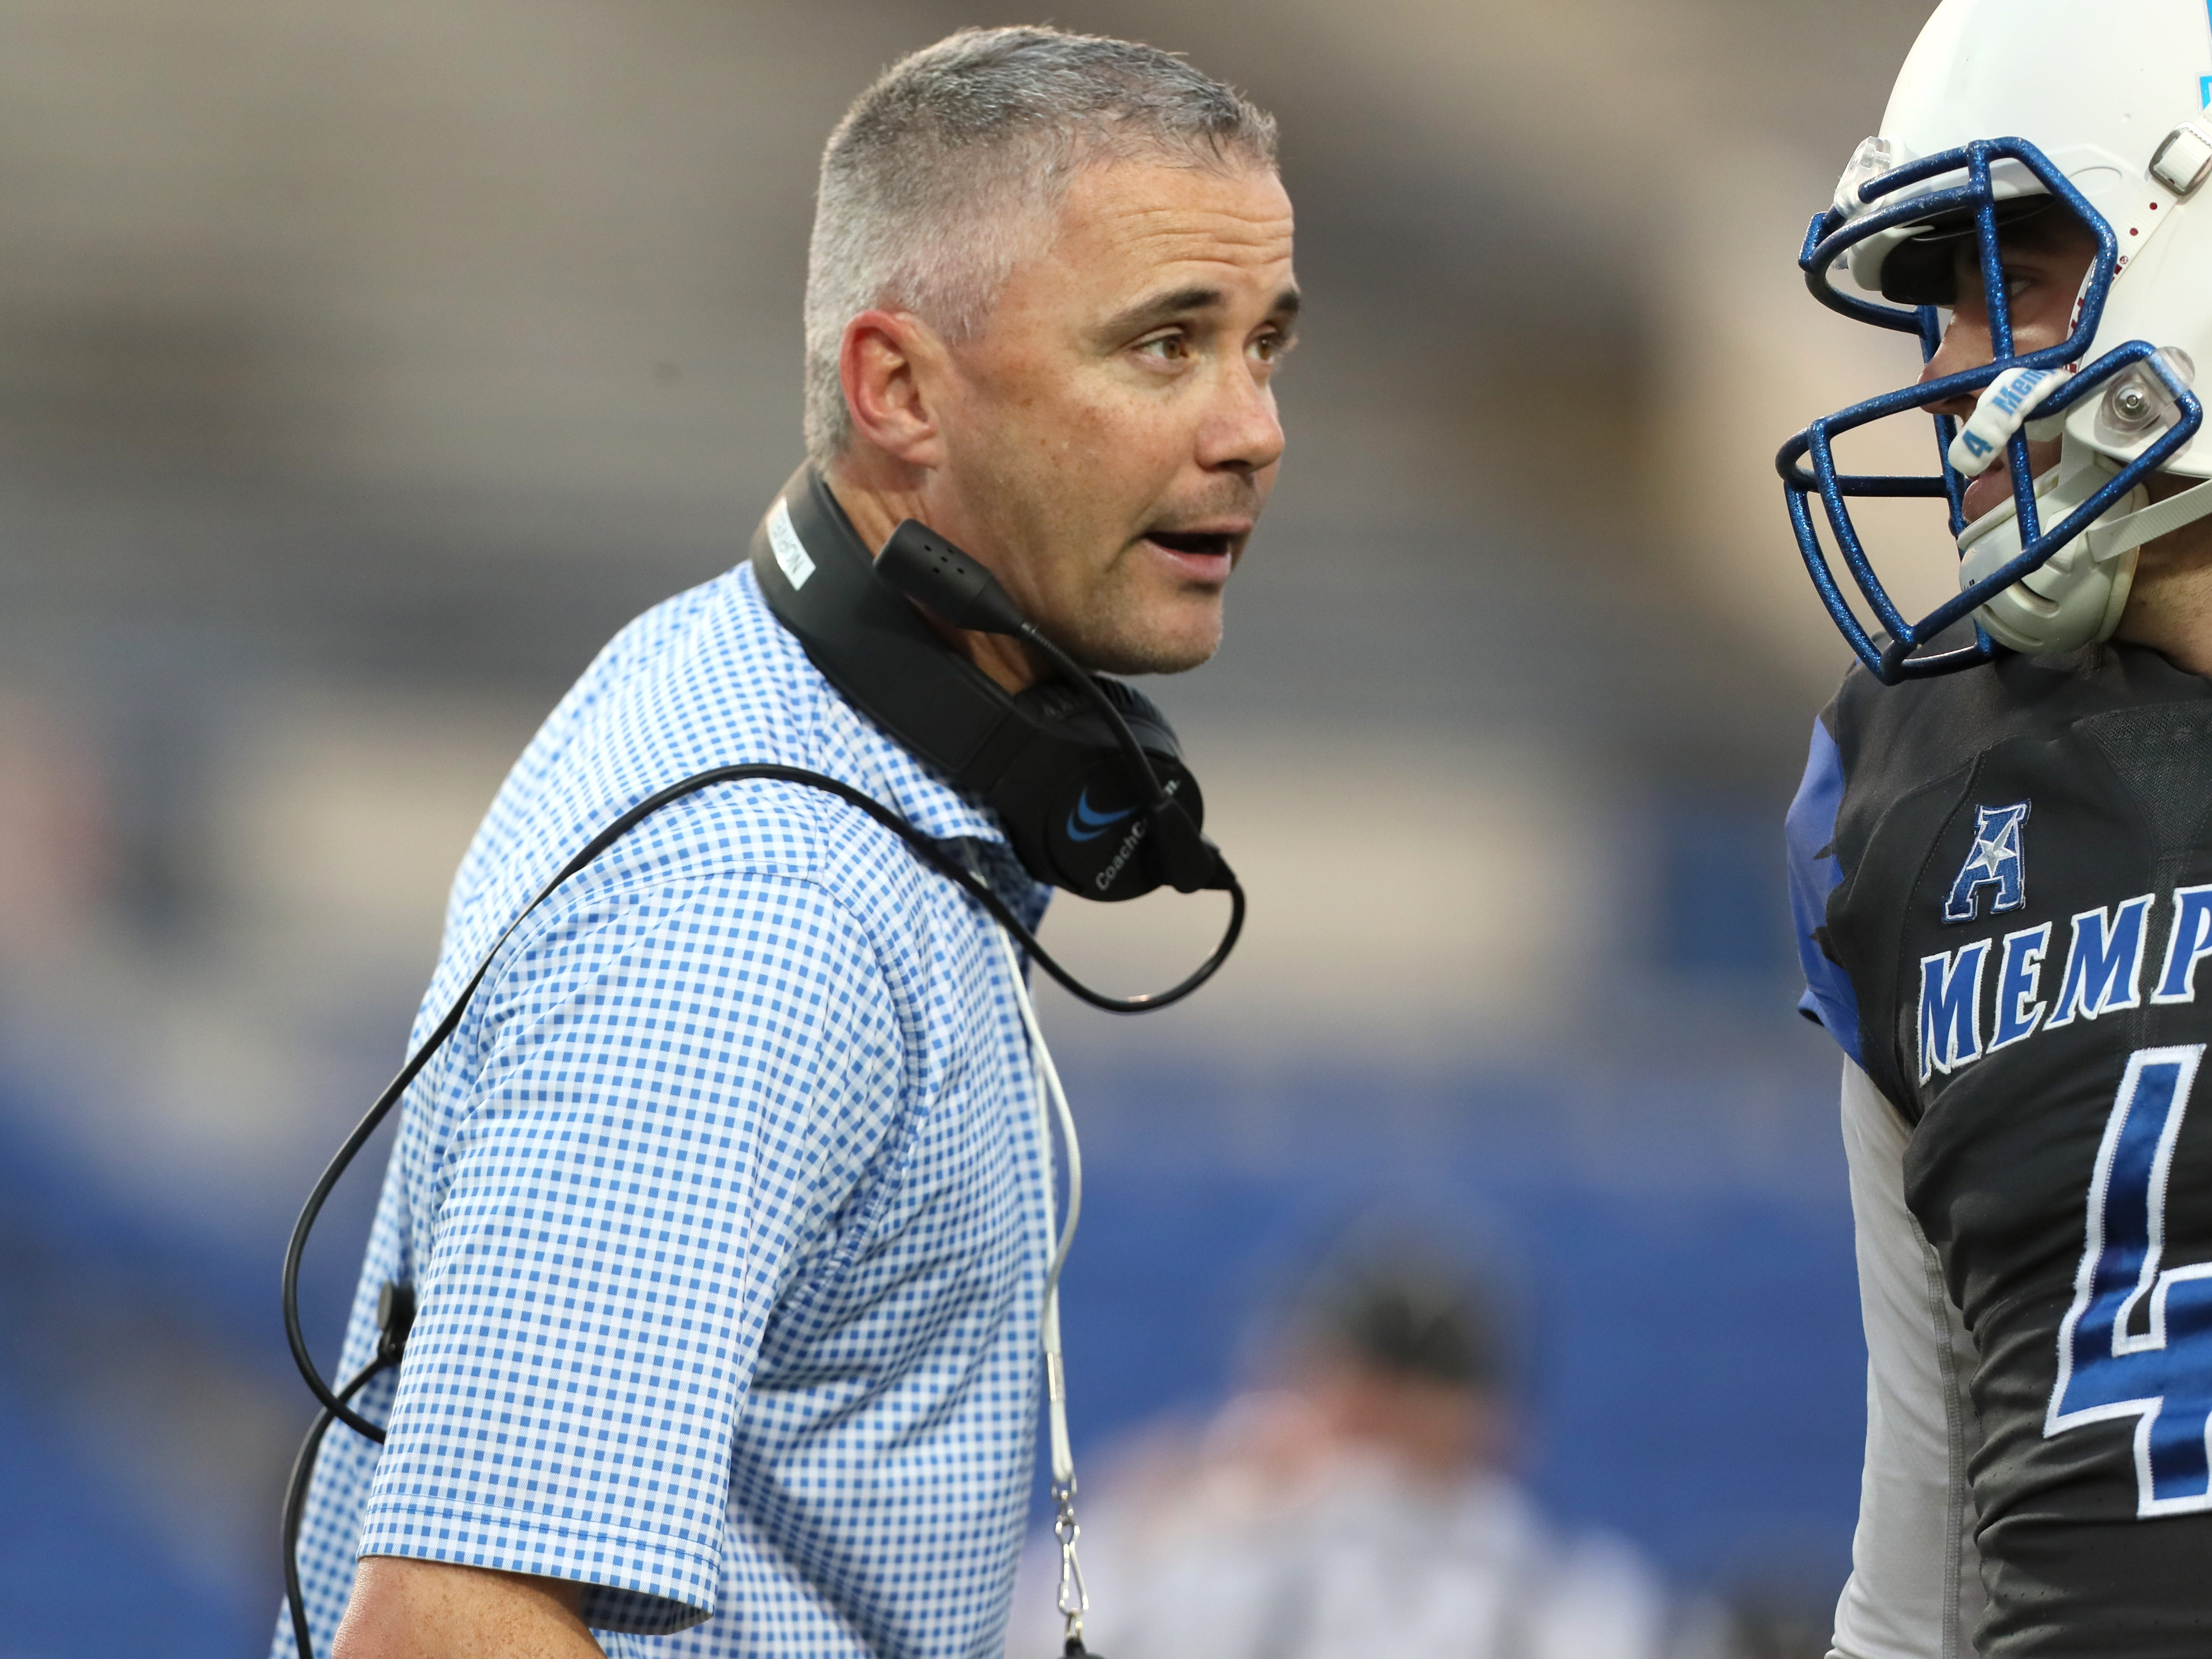 Memphis Tigers Head Coach Mike Norvell talks to quarterback Brady McBride during their Friday Night Stripes spring game at Liberty Bowl Memorial Stadium on Friday, April 12, 2019.